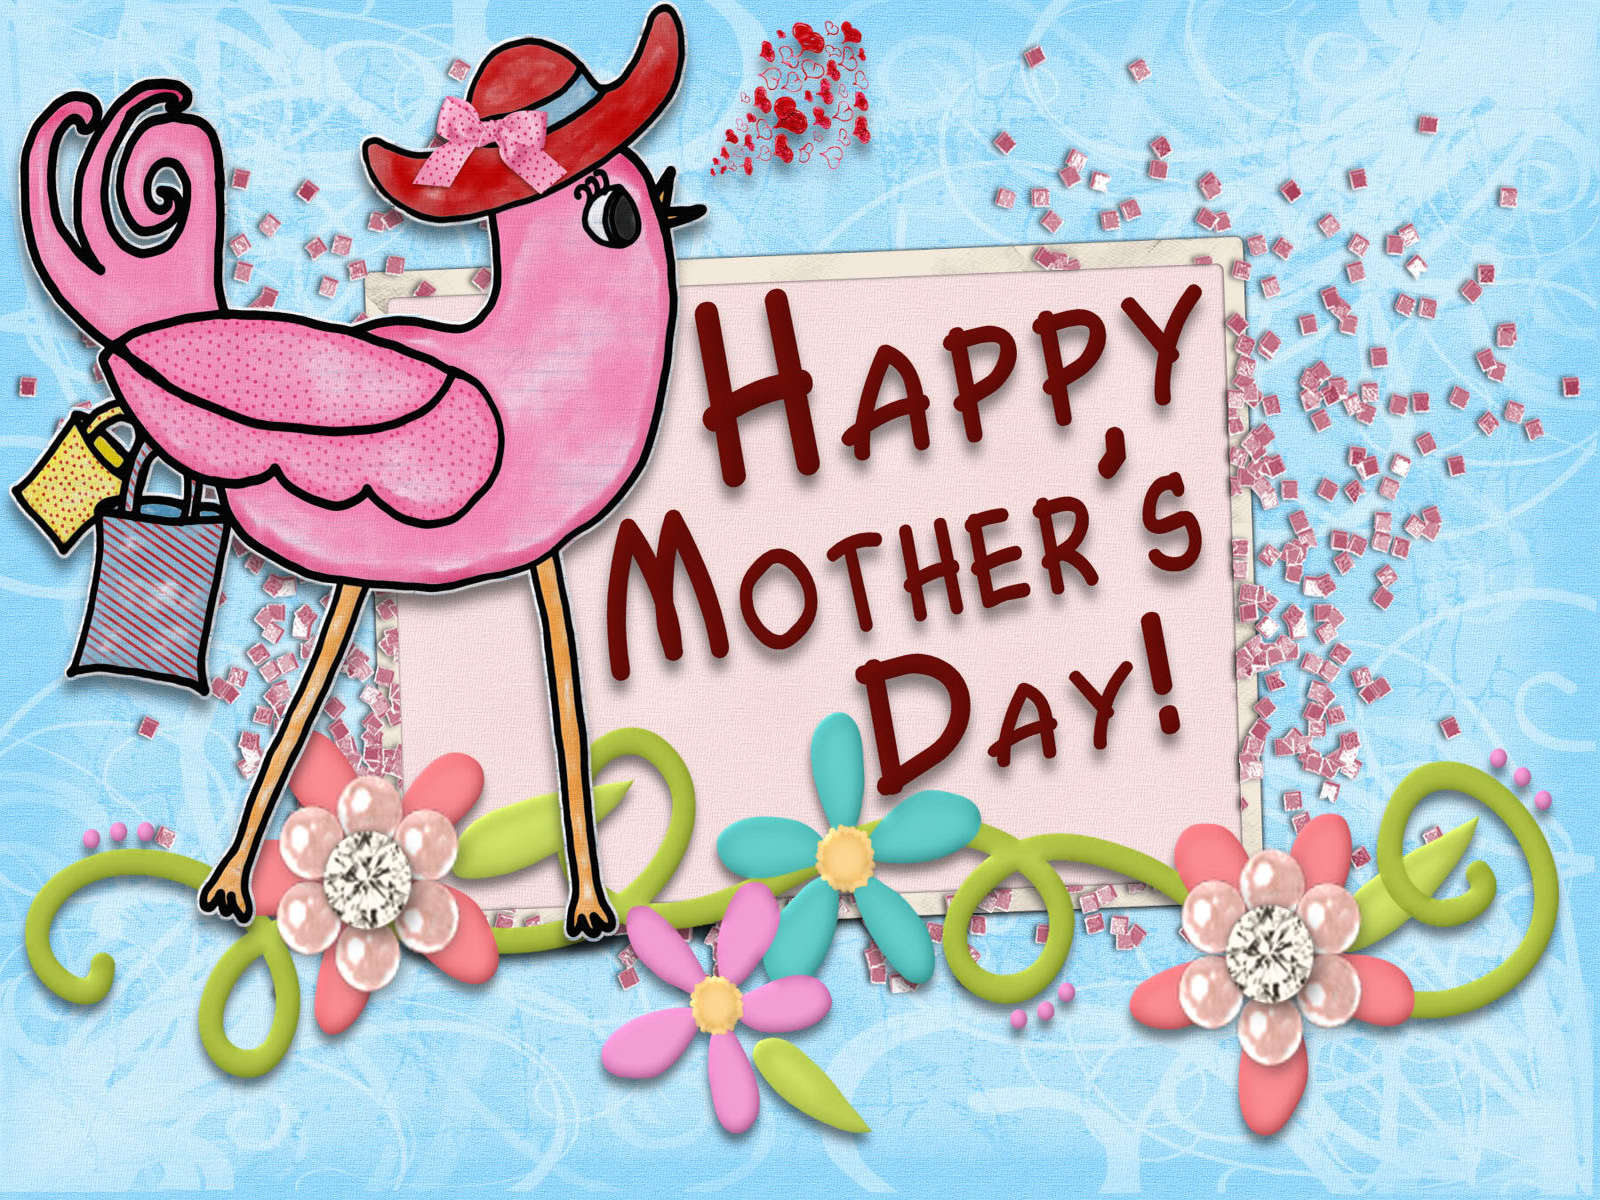 mother's day quotes Mother's Day Quotes Pinterest